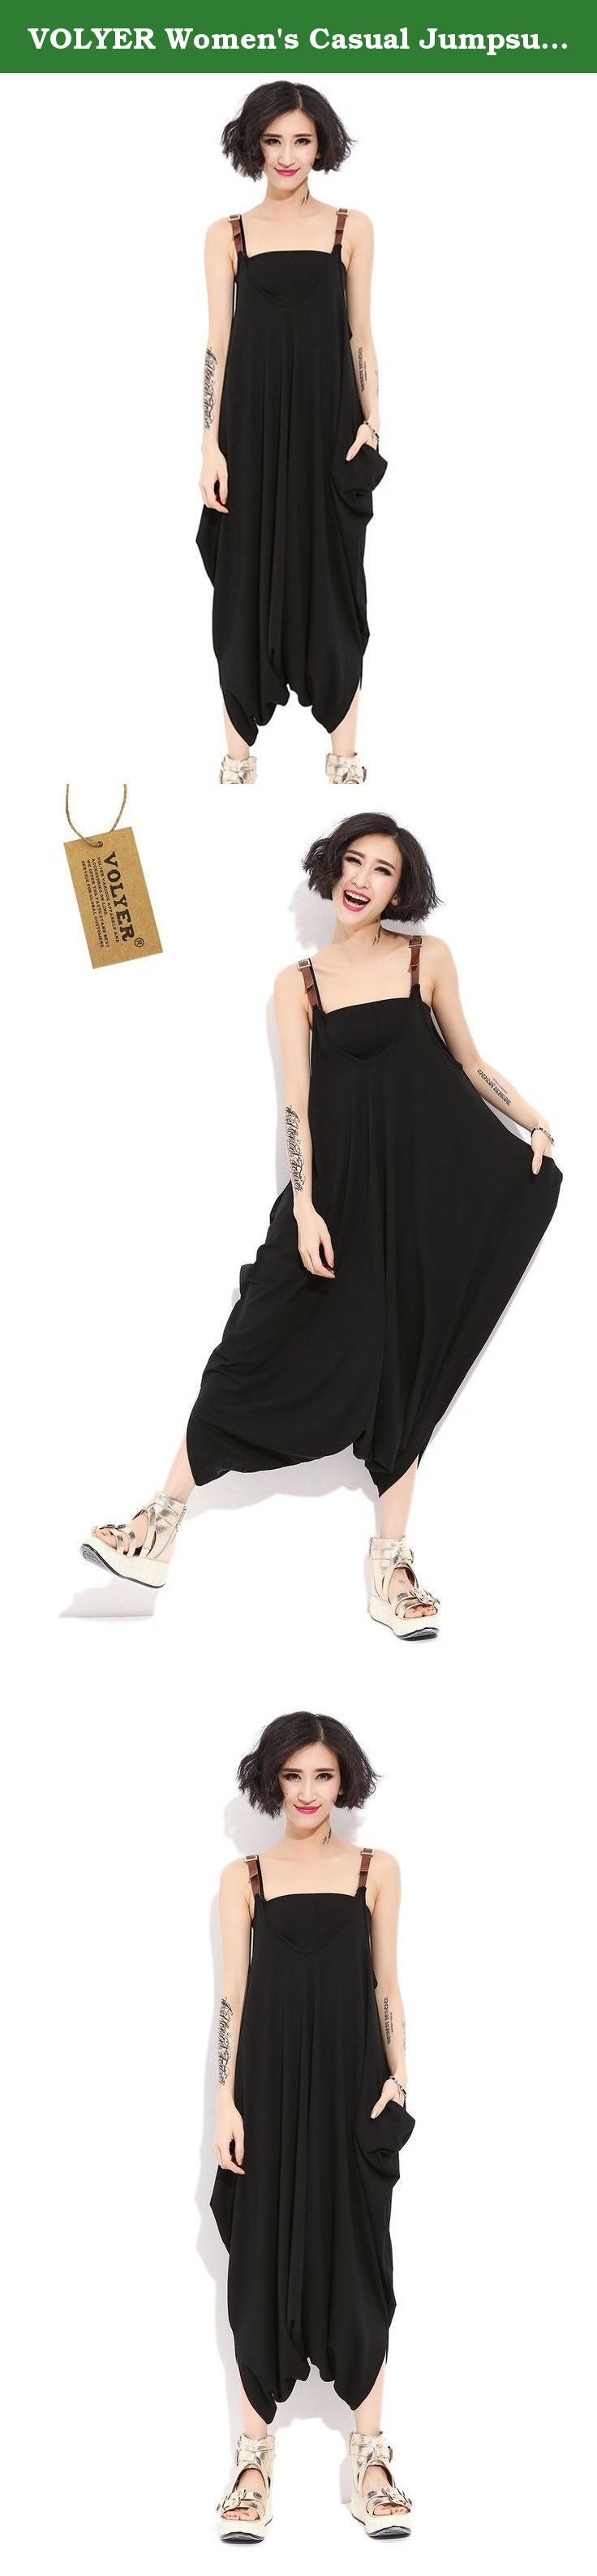 VOLYER Women's Casual Jumpsuit Big Size Strap Loose Rompers (Black). Delivery is about 2 weeks. Please try it on when you got item, and feel free to contact us if there is any quesiton about the item. Thanks for your undestanding. .